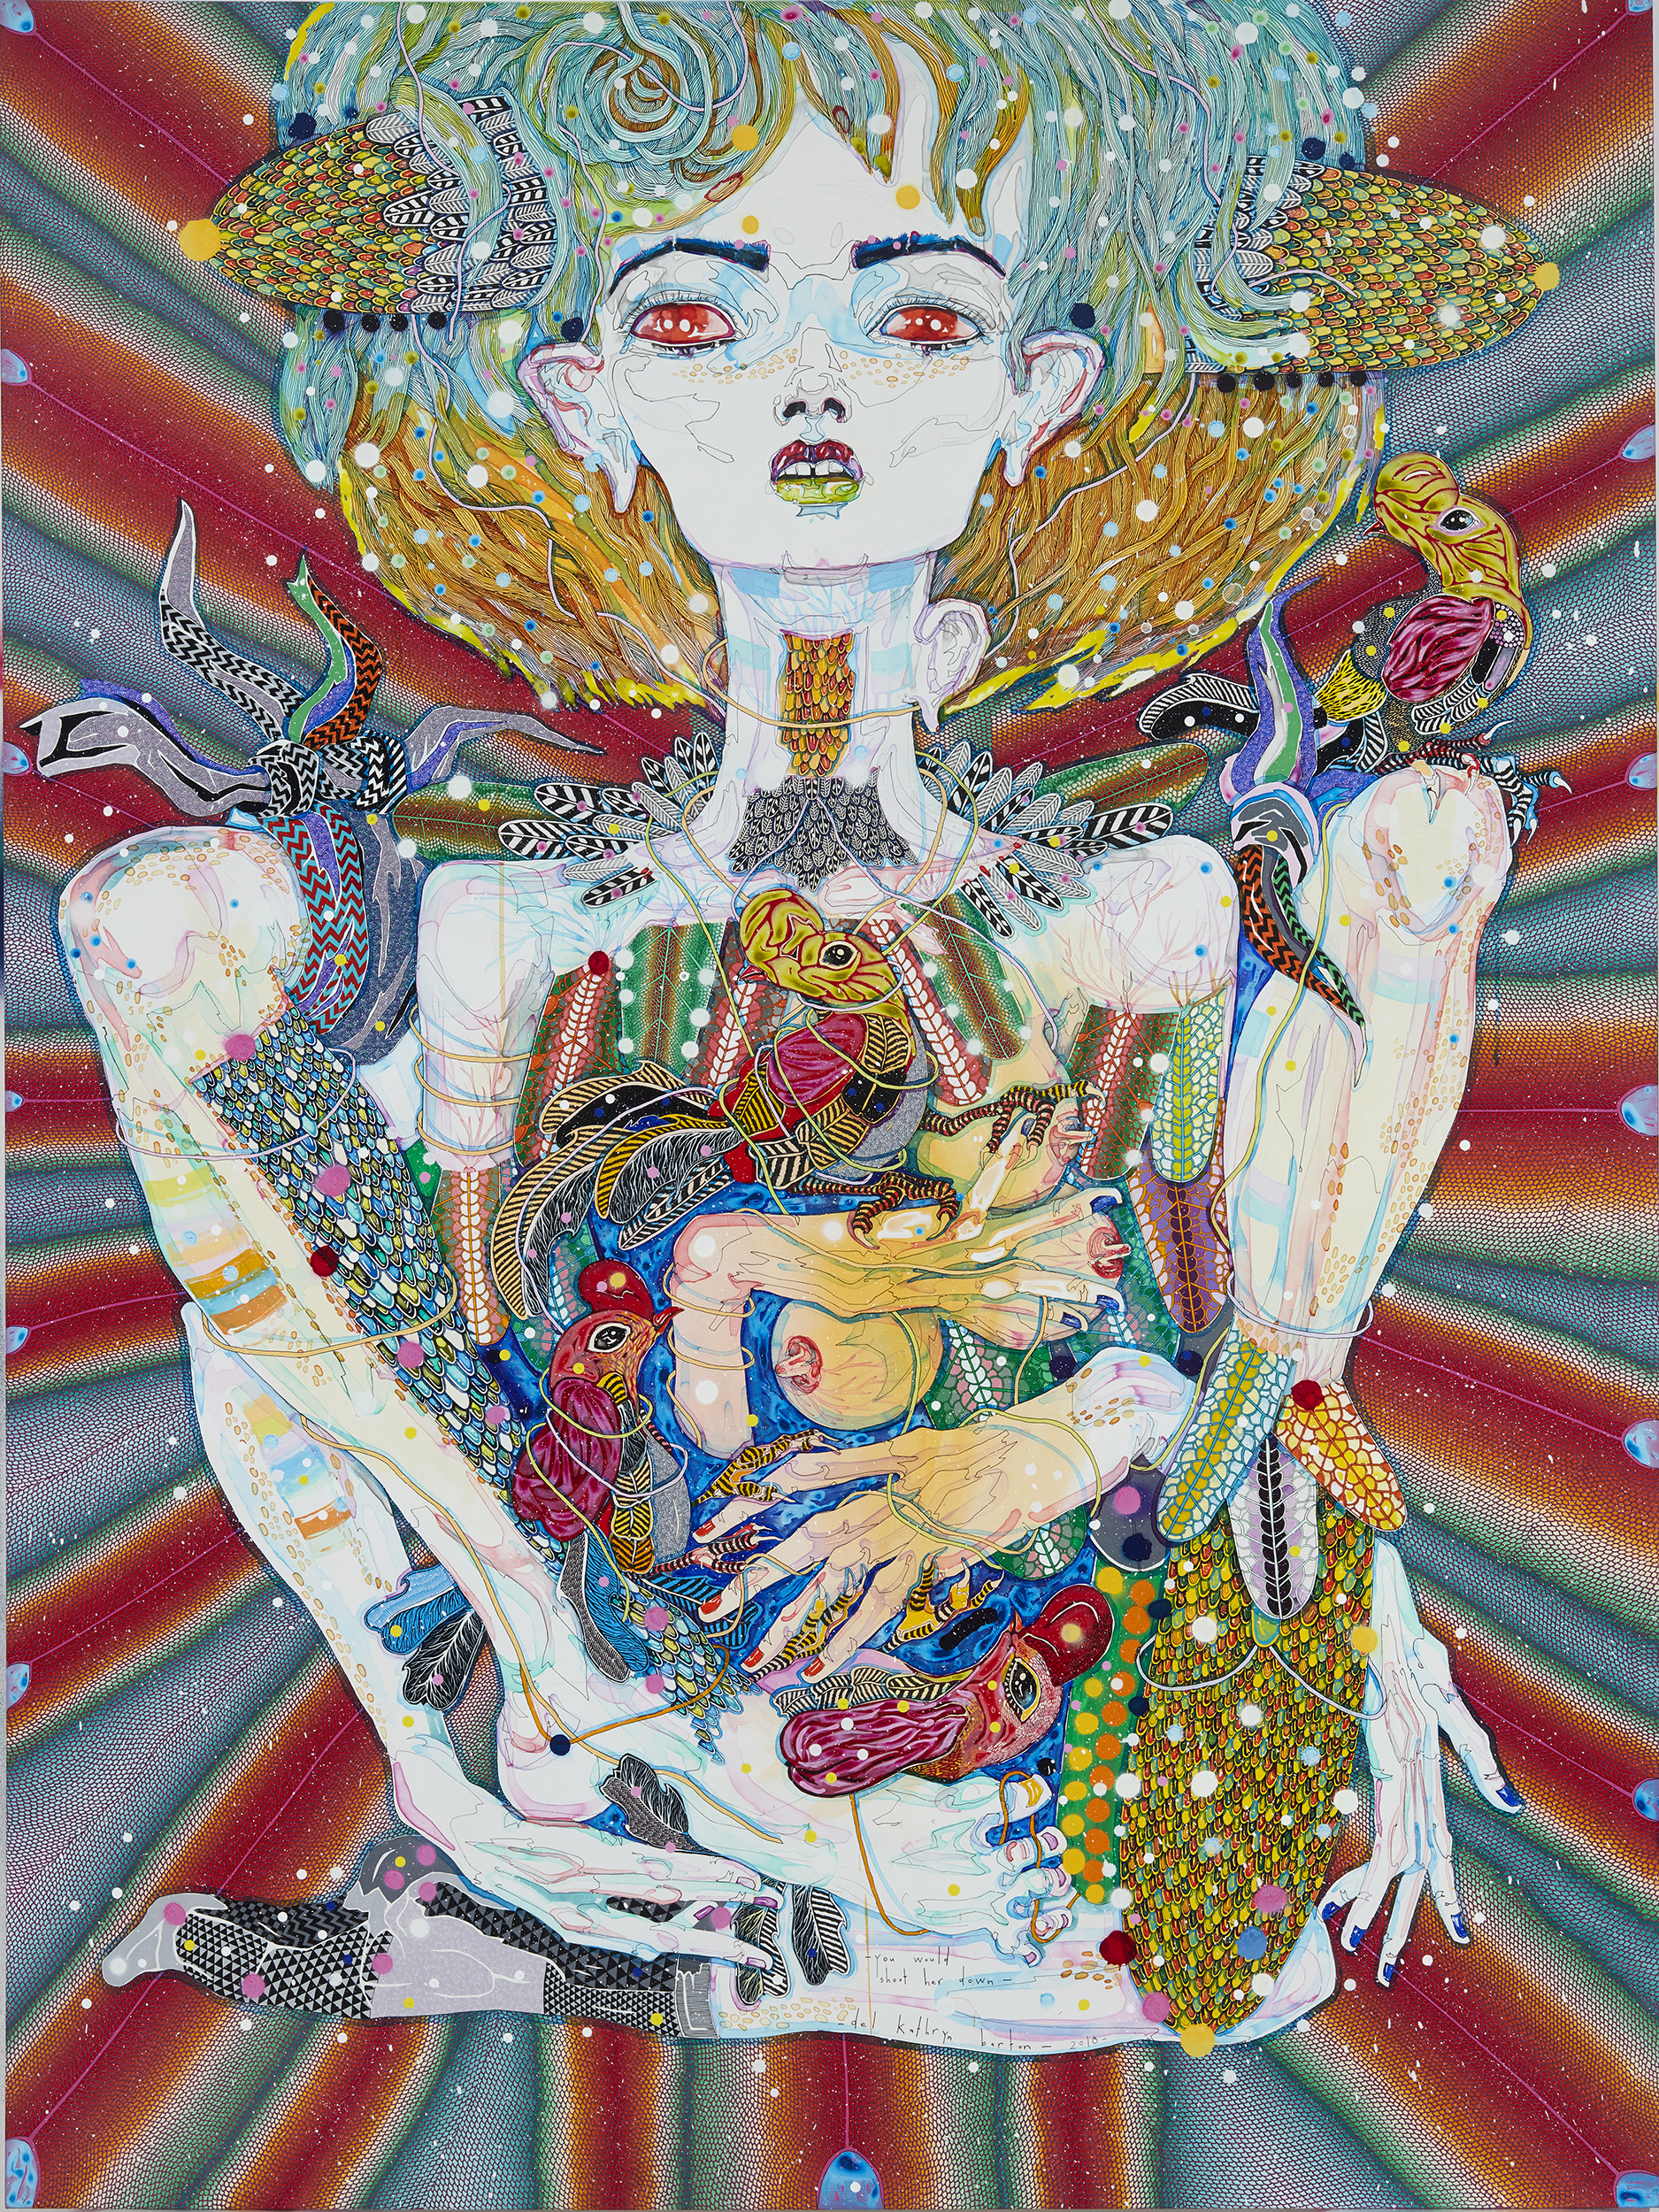 Del Kathryn Barton,  You would shoot her down , 2018. Acrylic on French linen, 240 x 180 cm. Courtesy of the artist and Arndt Art Agency (A3).